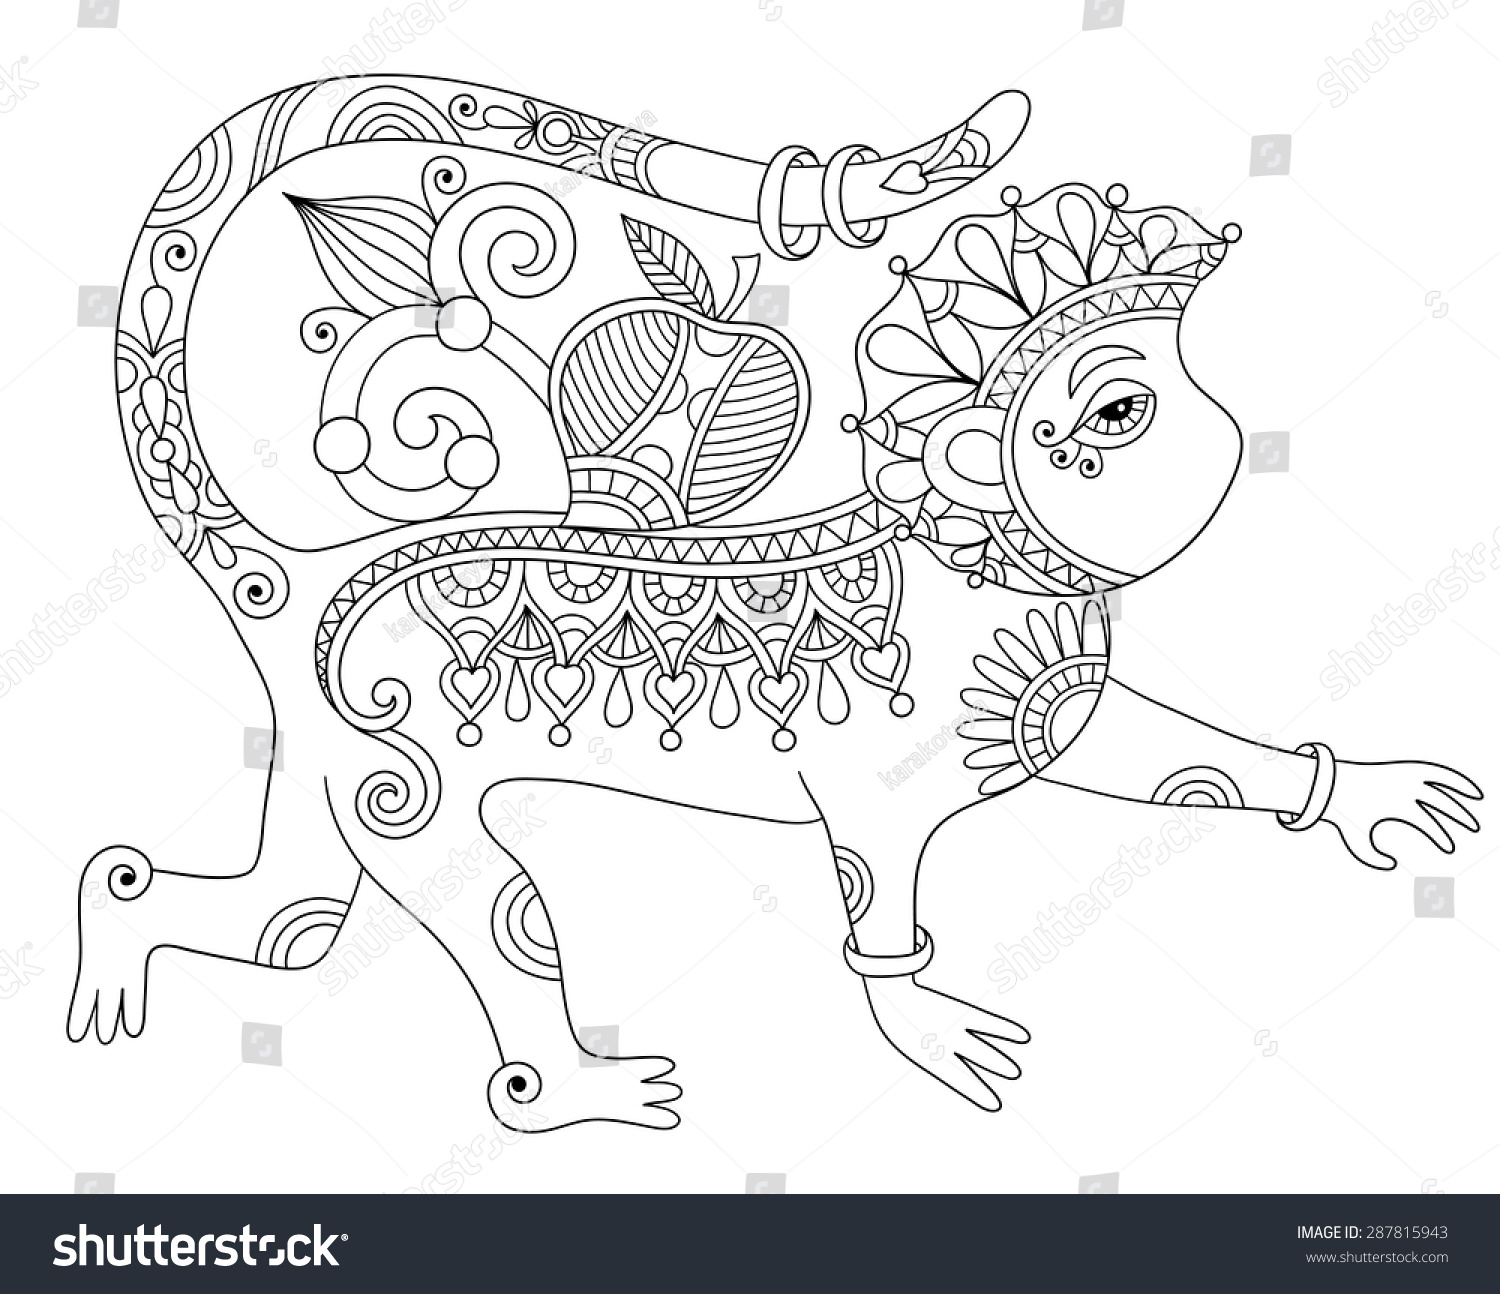 Line Art Drawing Ethnic Monkey Decorative Stock Vector 287815943 ... for Line Drawing Monkey  143gtk